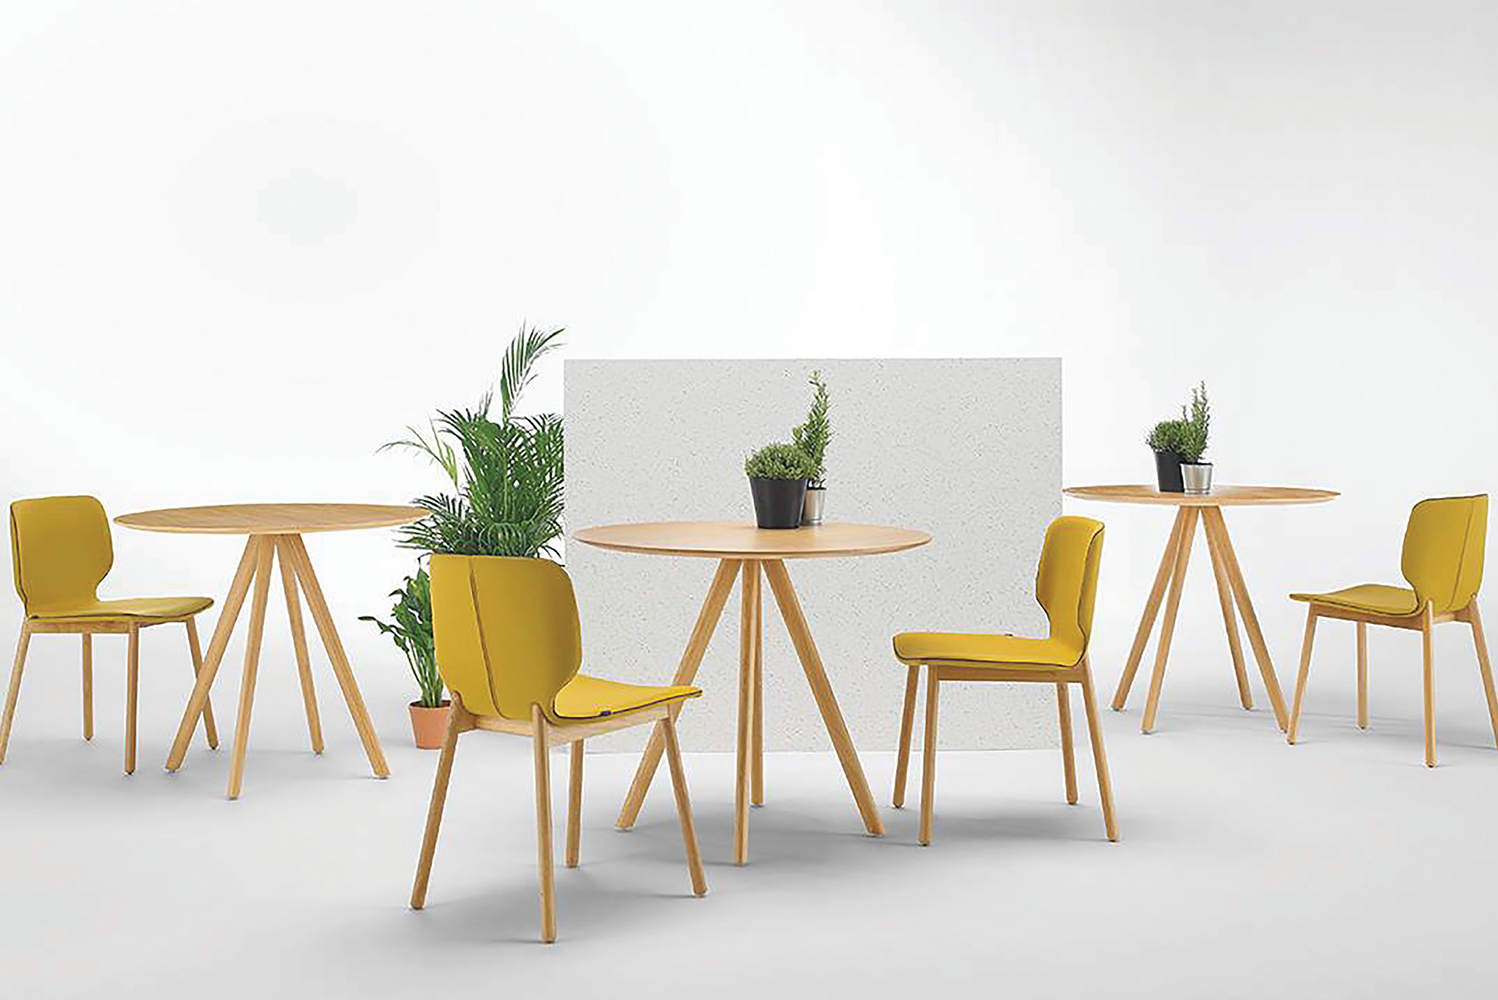 For frames, there are solid legs in beech or oak, while four-legs or a sled base in steel allows the chairs to stack for additional practicality.